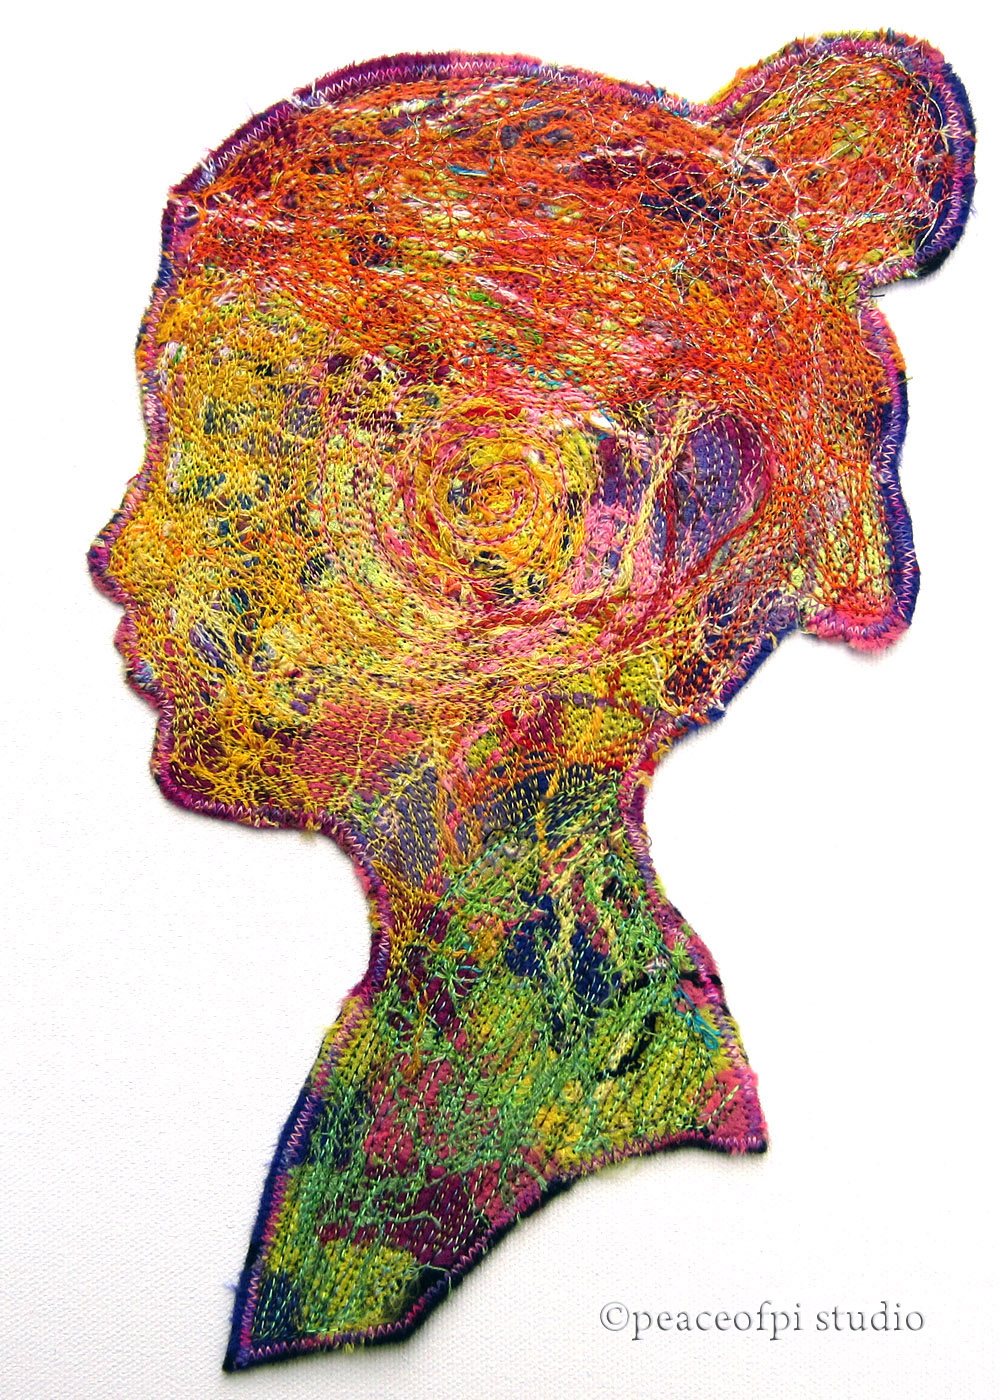 Thread Art Part - 47: Profiles I: Stitched Silhouette Thread Art